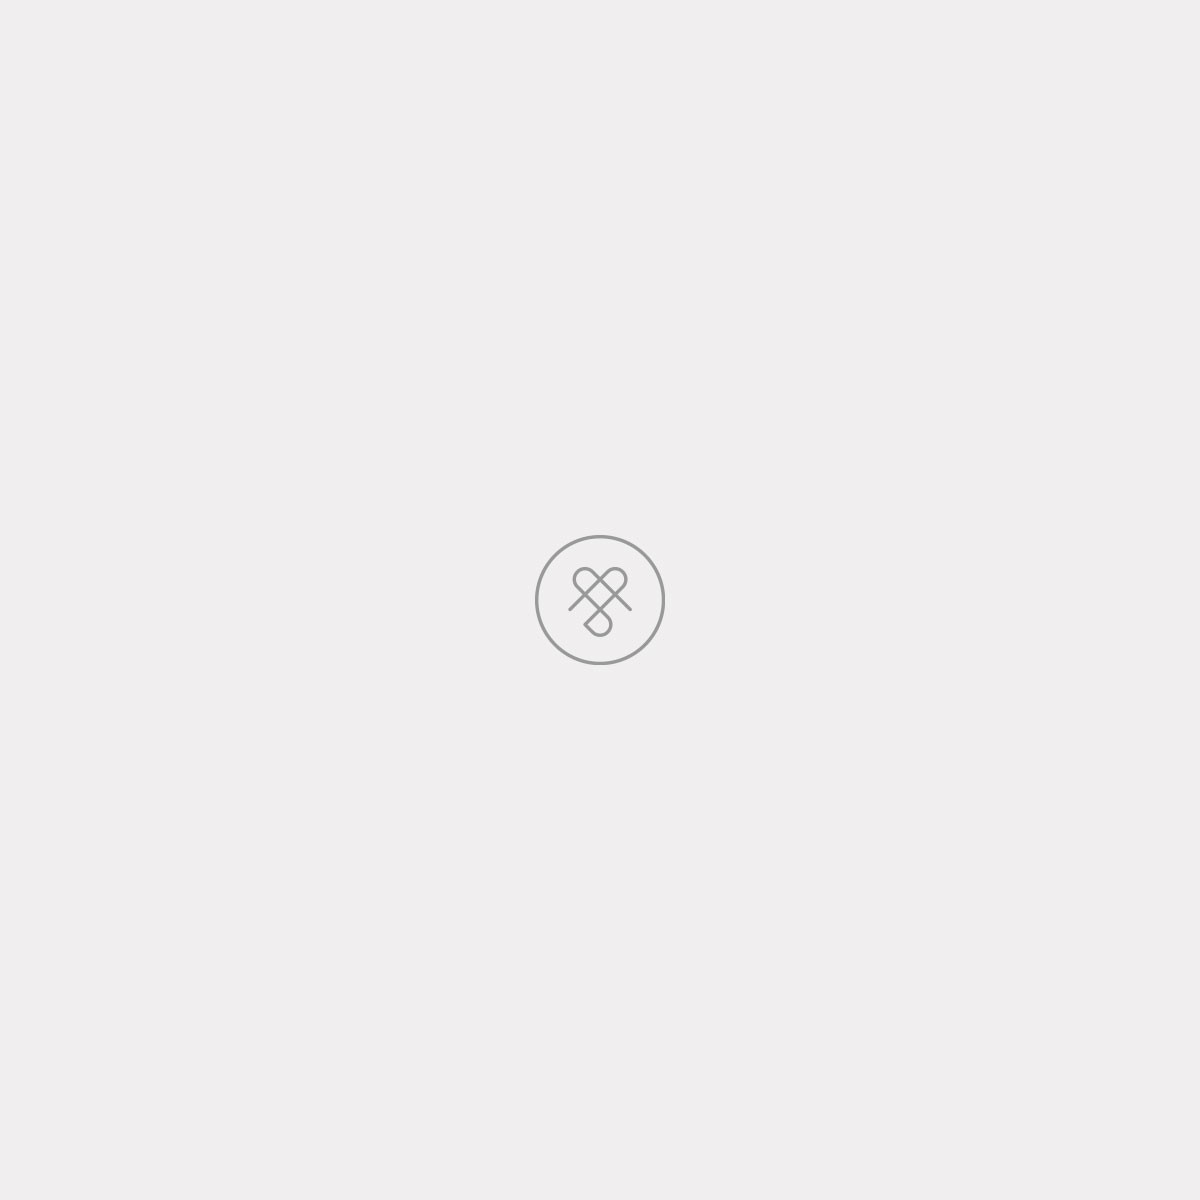 The Lorenzo - Slim / Small Leather Briefcase for Men and Women